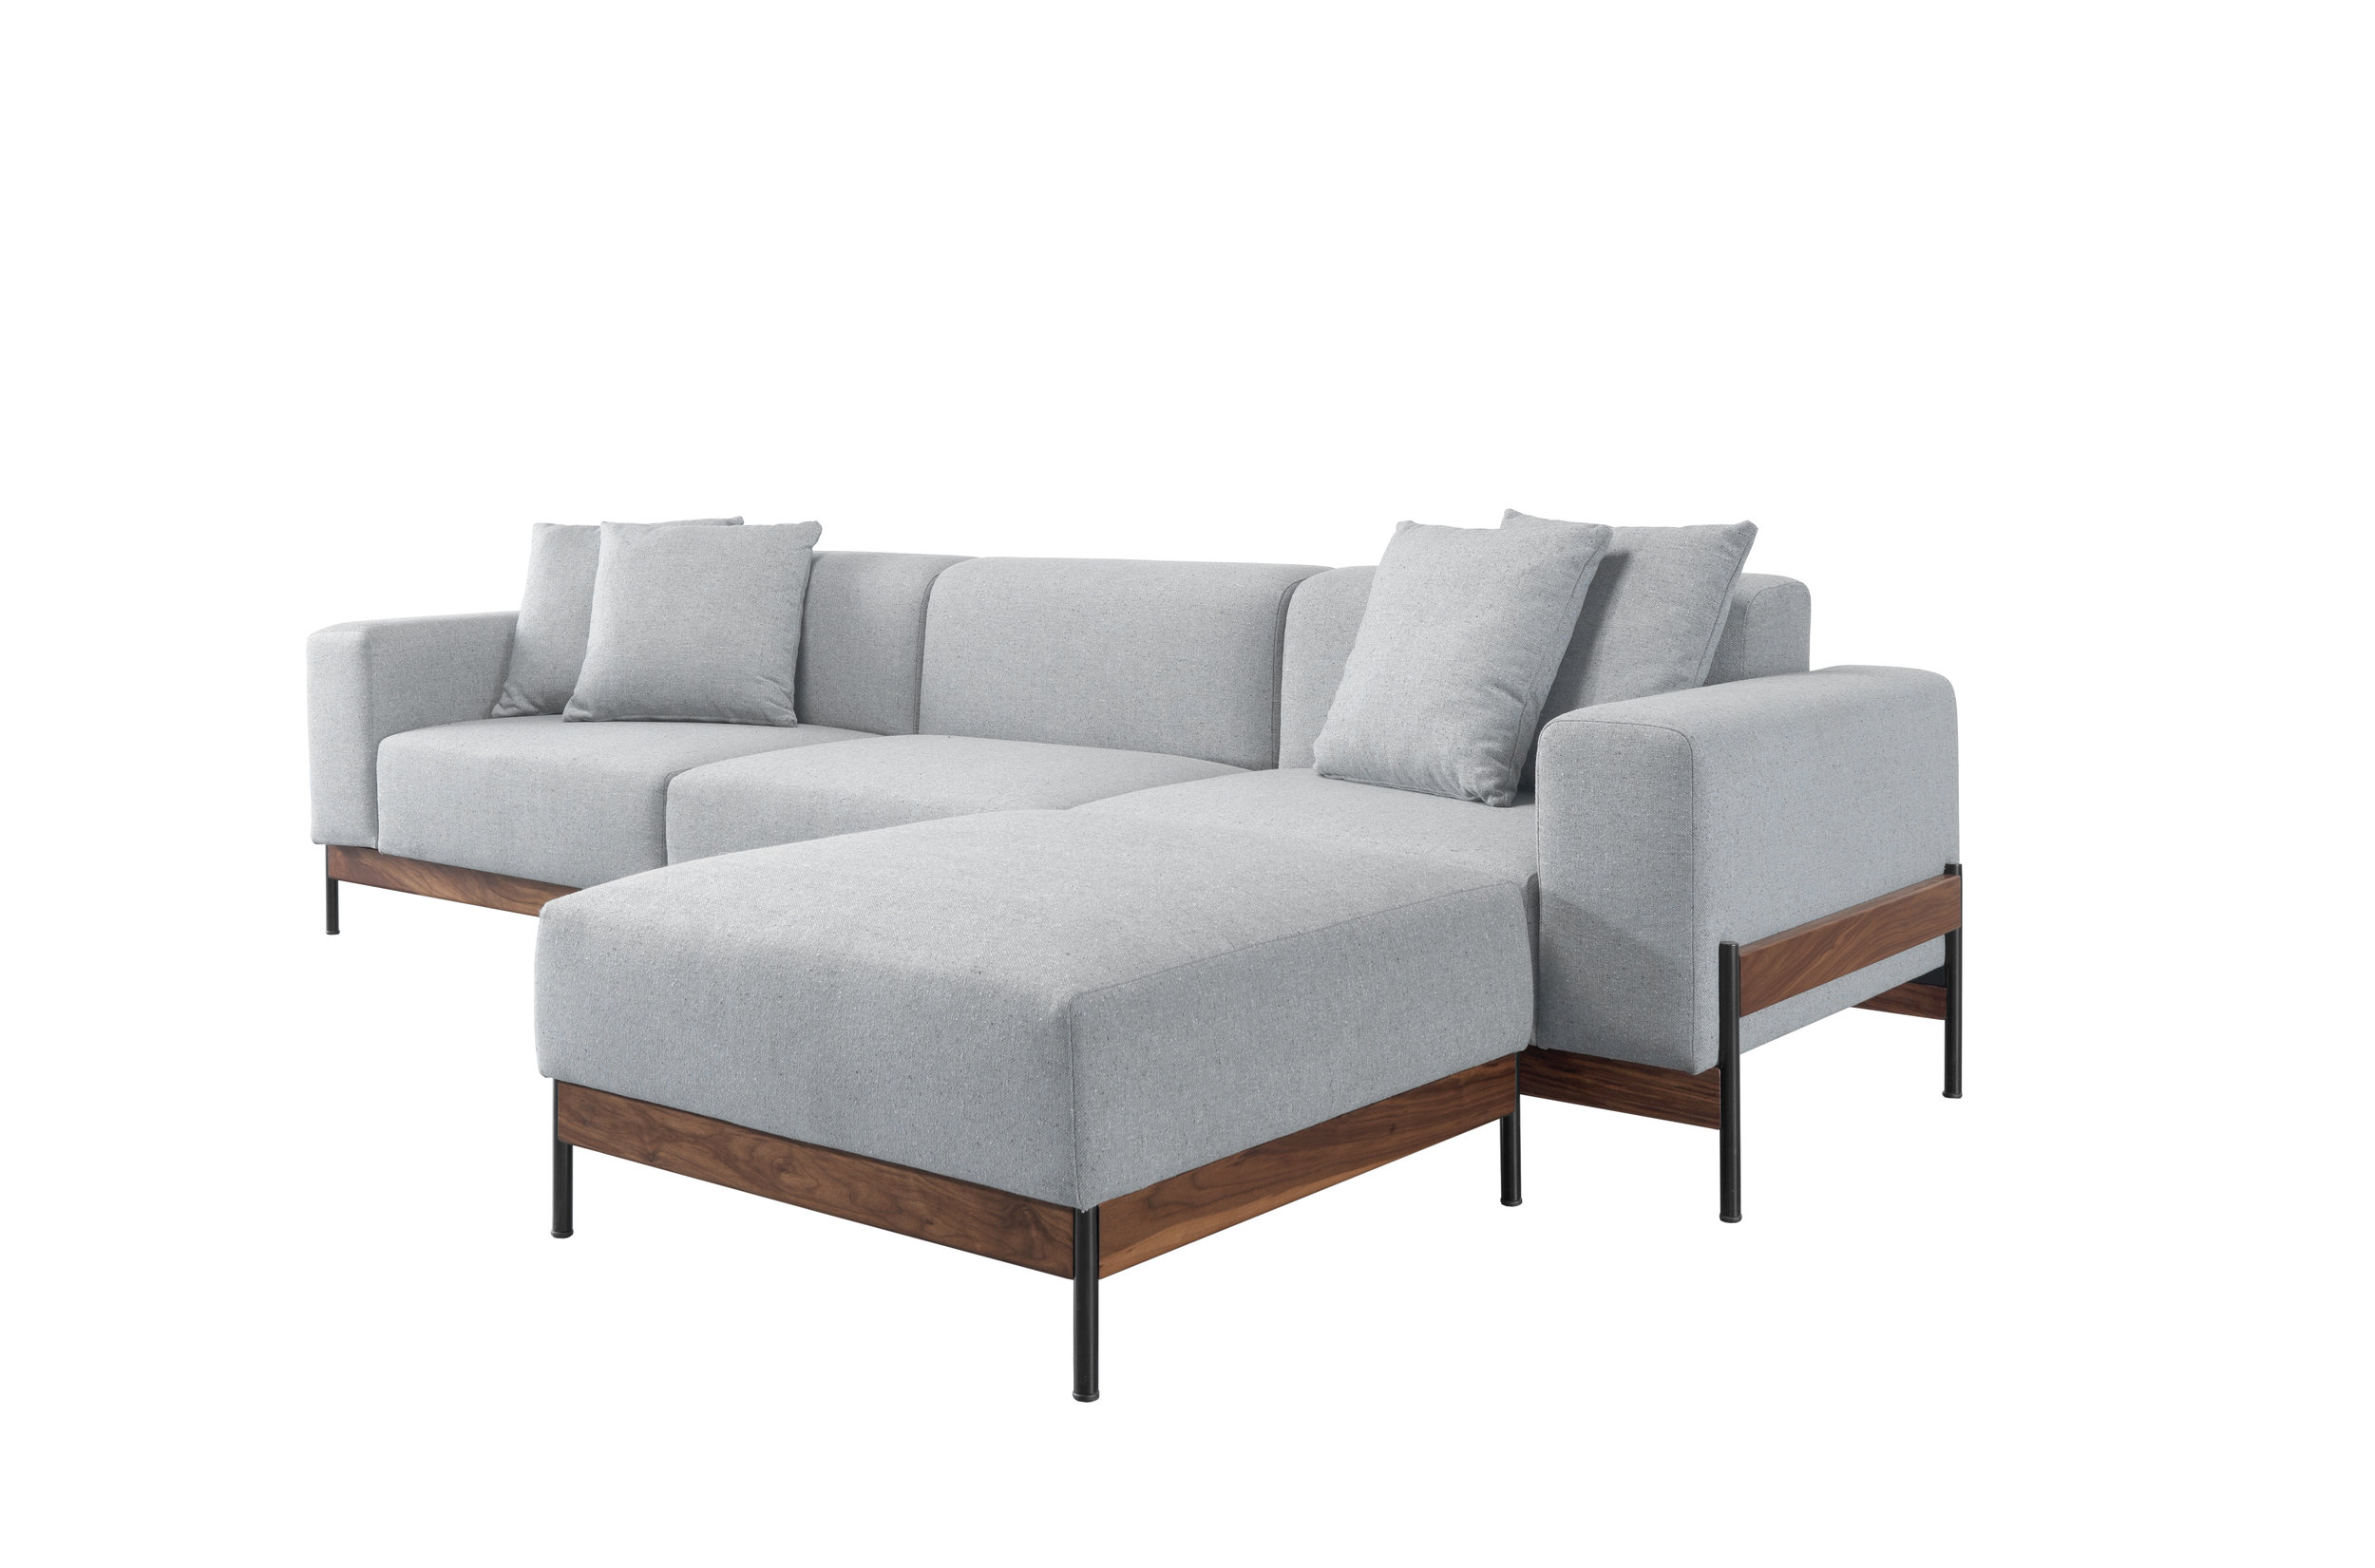 Bowie Sofa from WeWood